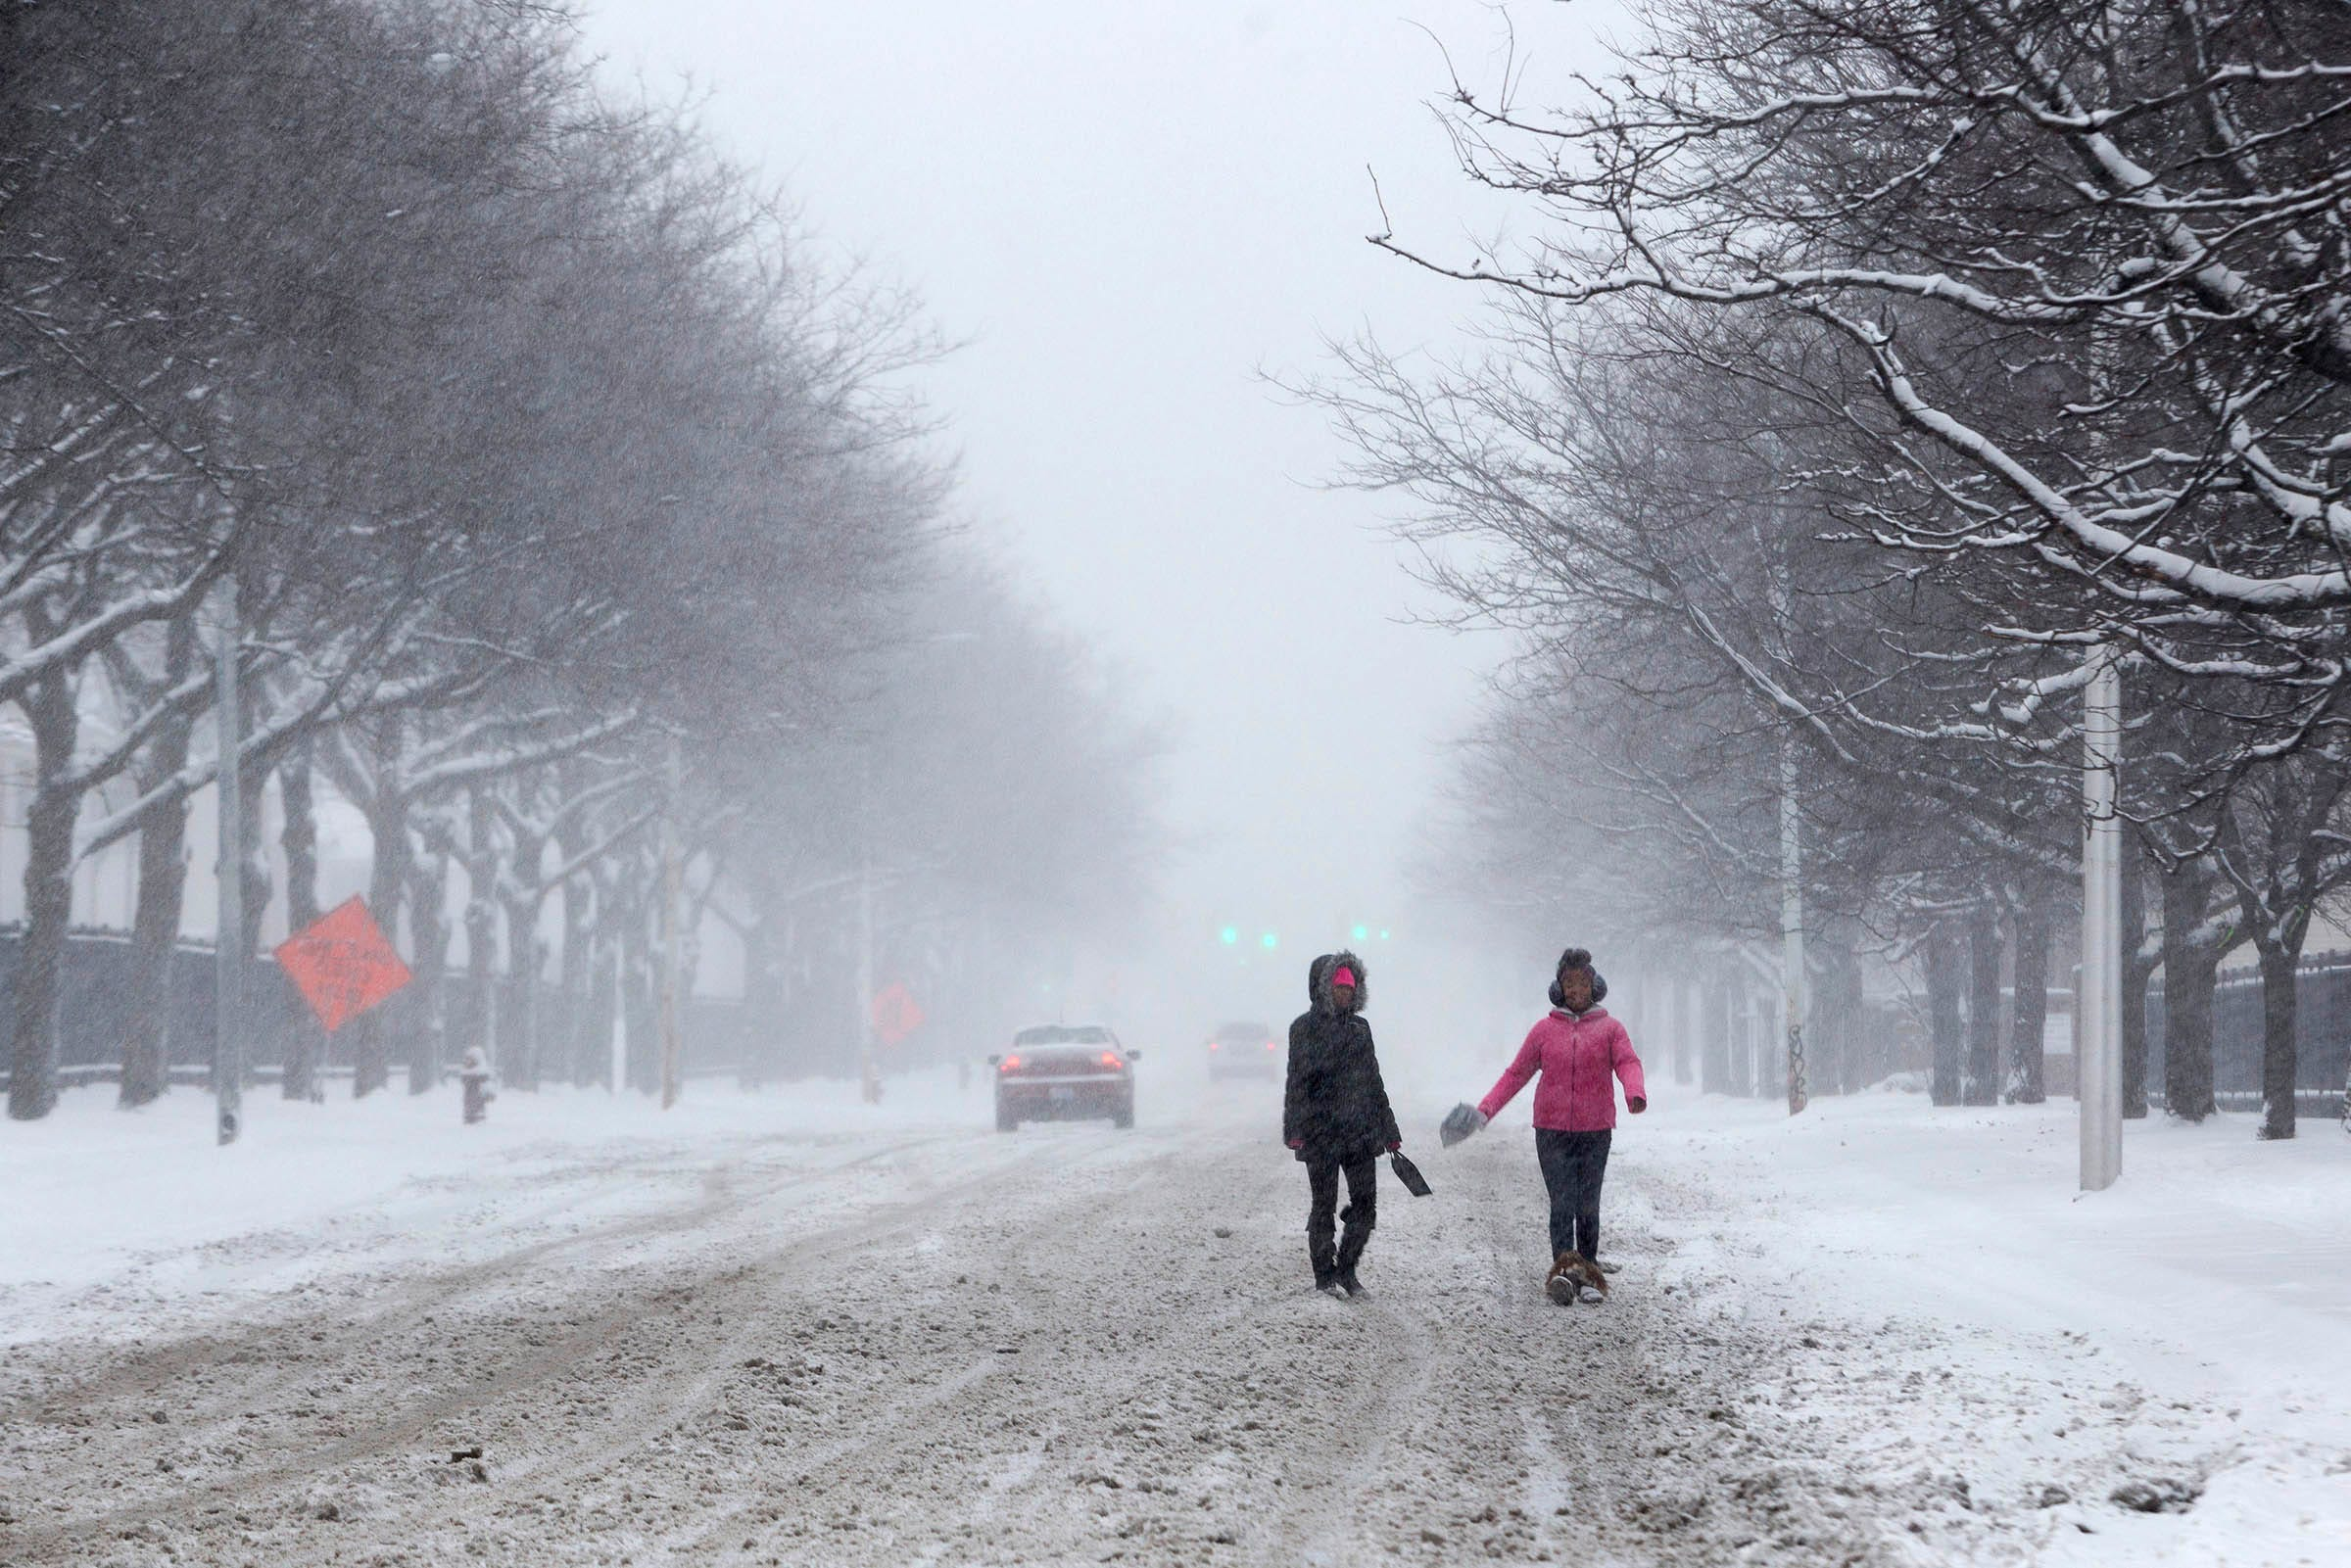 Michigan winter expected to be wetter than average